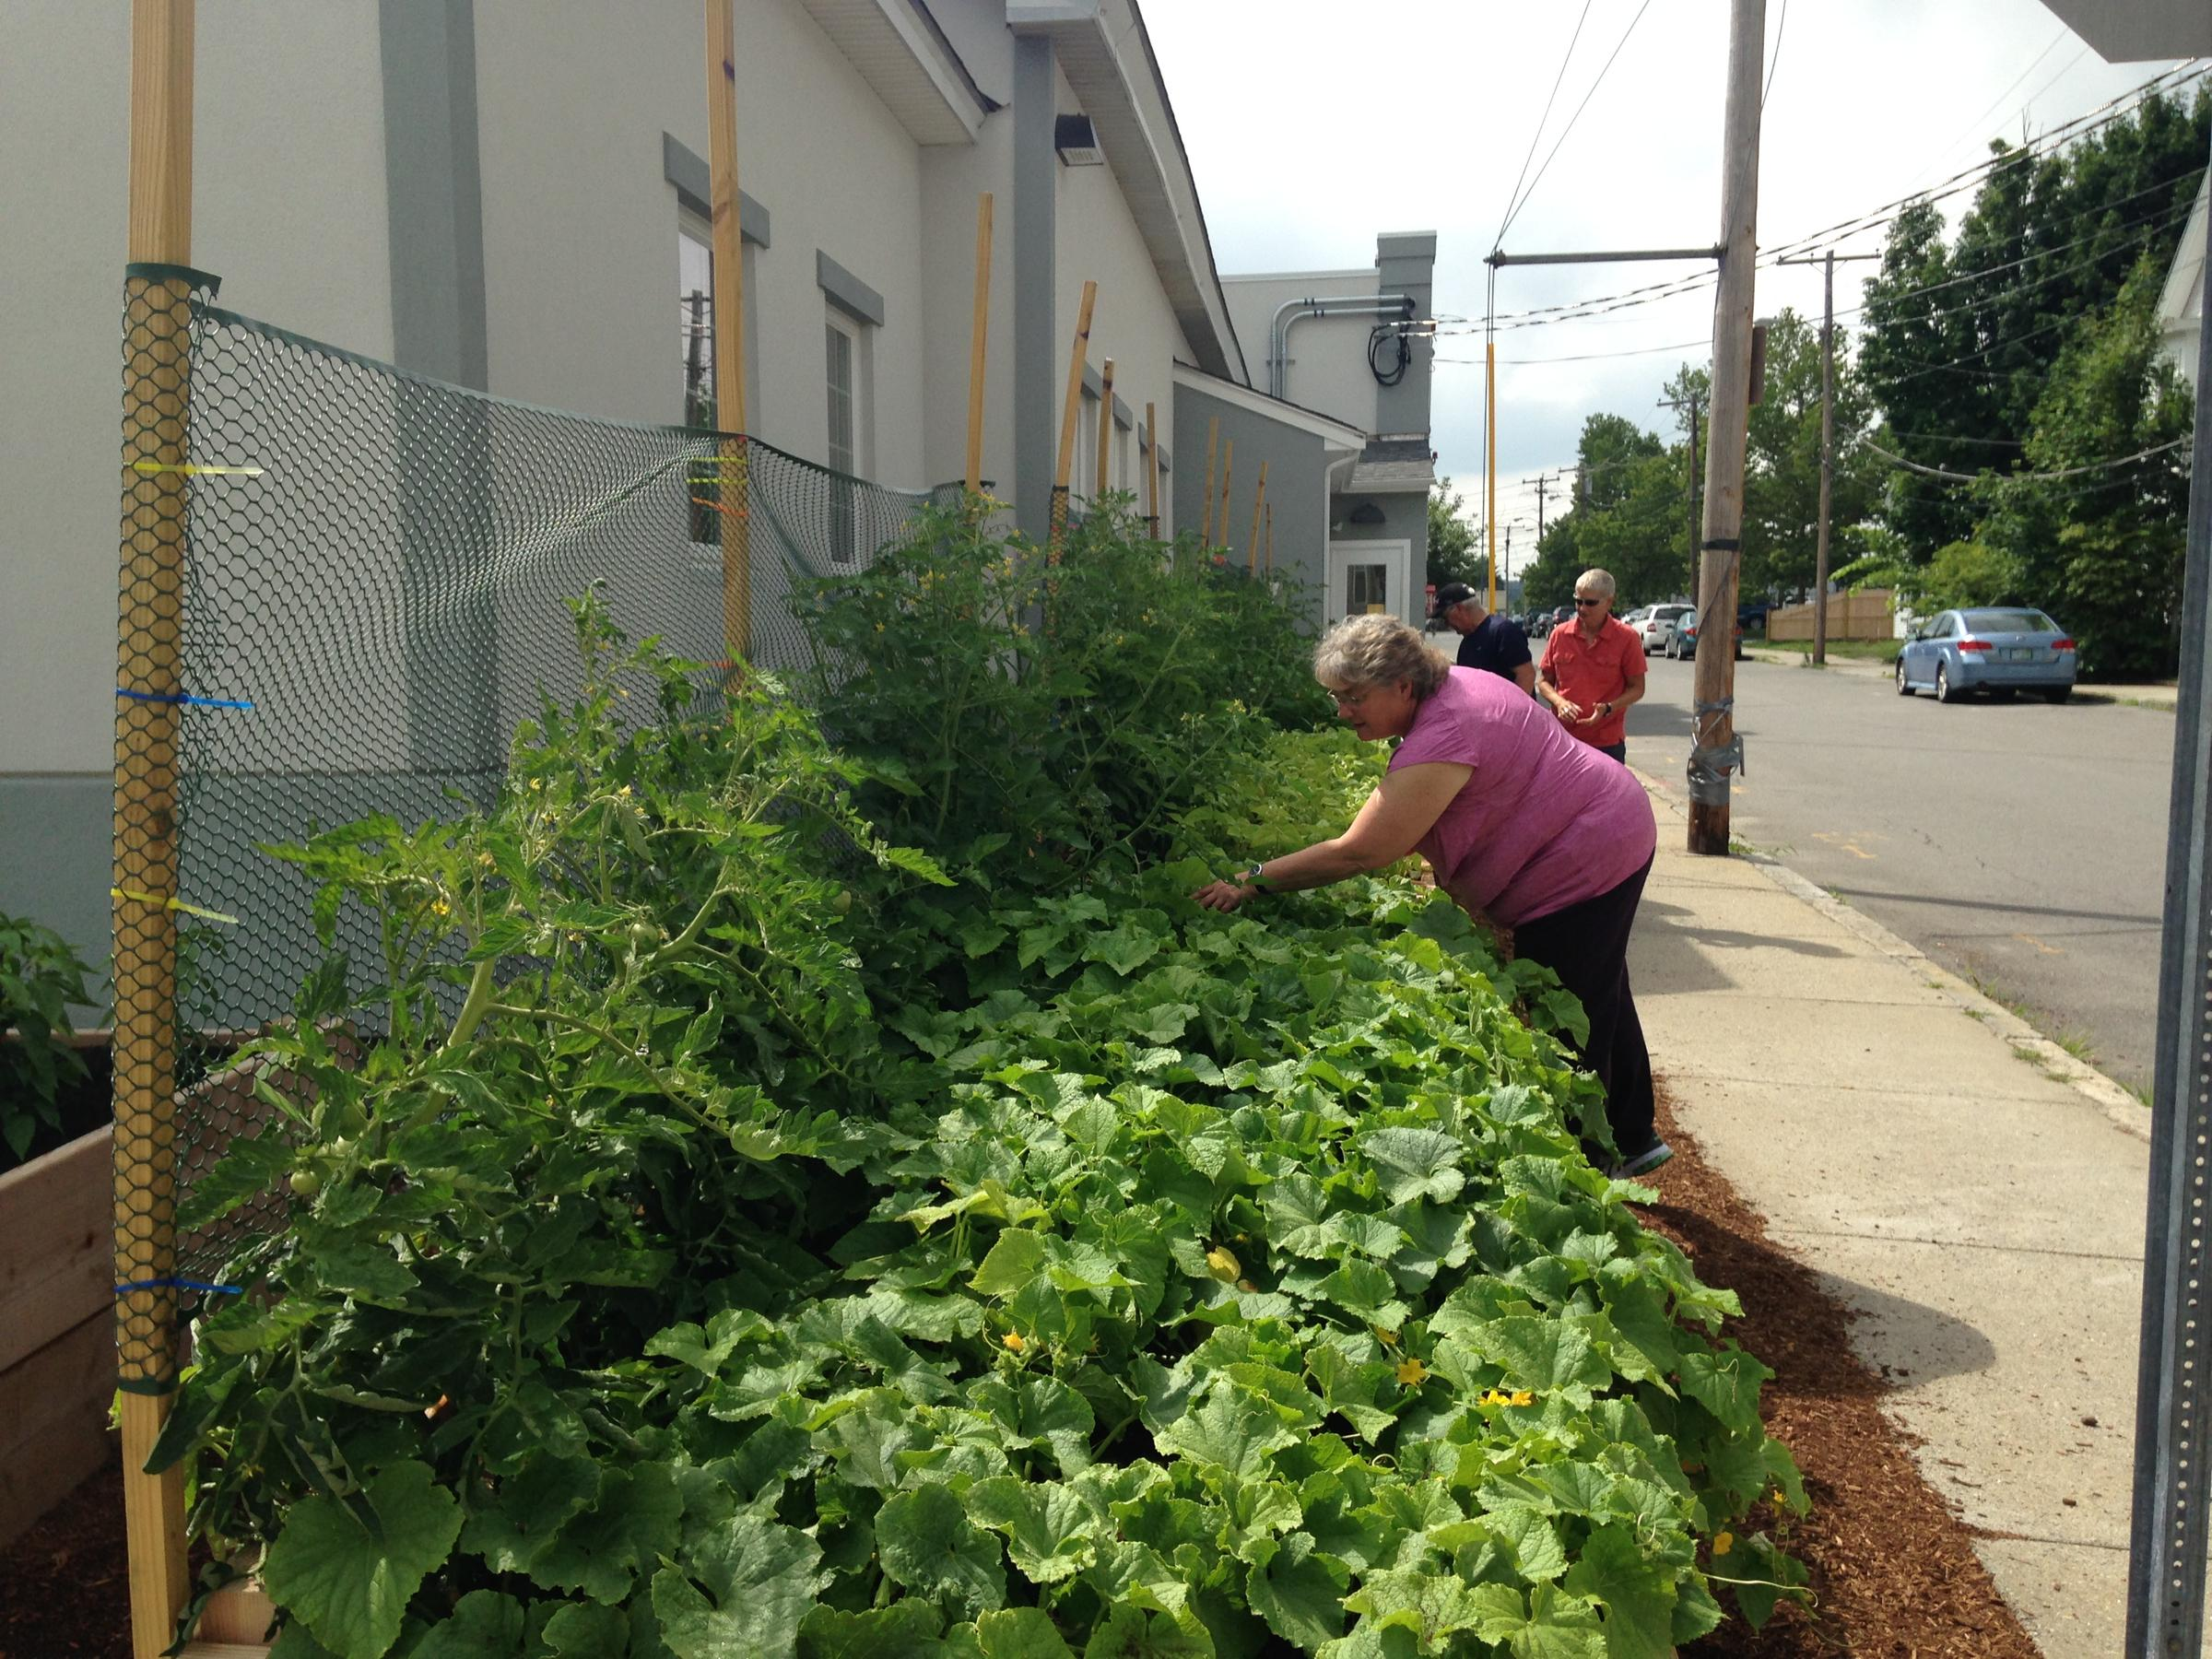 Foodstuffs: In Nashua, A Community Effort to Grow Food for Those ...